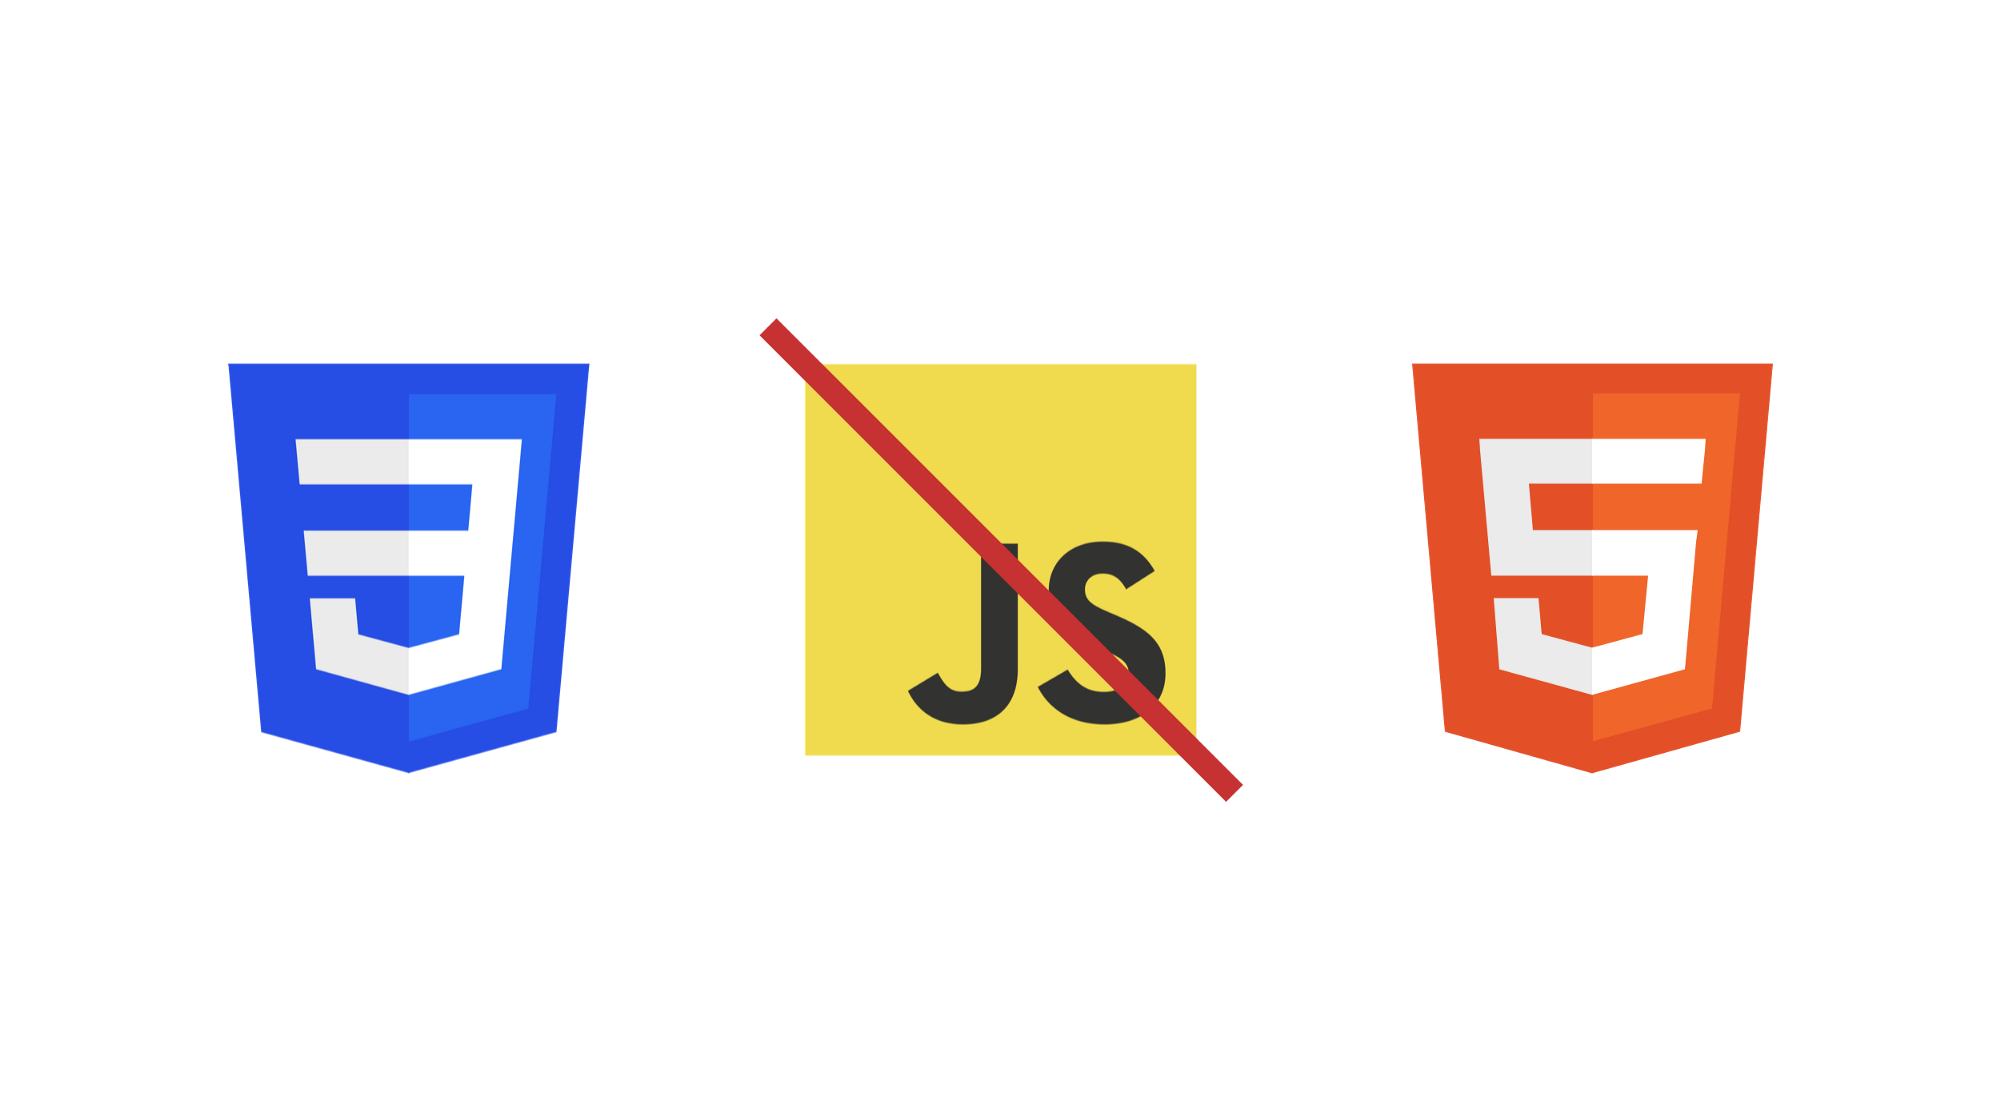 CSS3 logo, JS logo with a red line through it and the HTML5 logo in a row